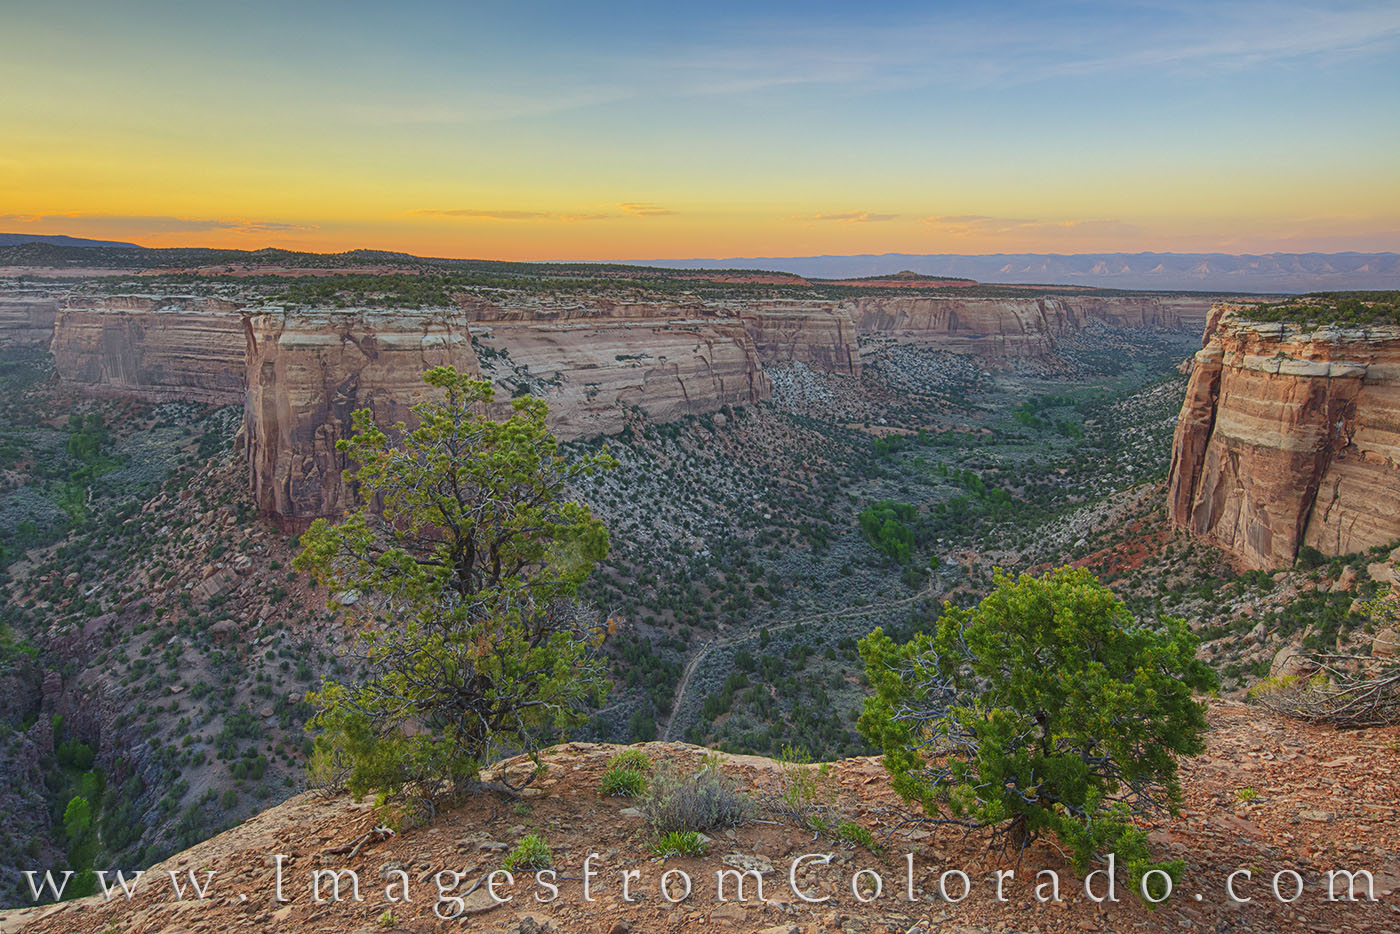 ute canyon, colorado national monument, ute canyon overlook, grand junction, monument canyon, rim rock road, summer, photo